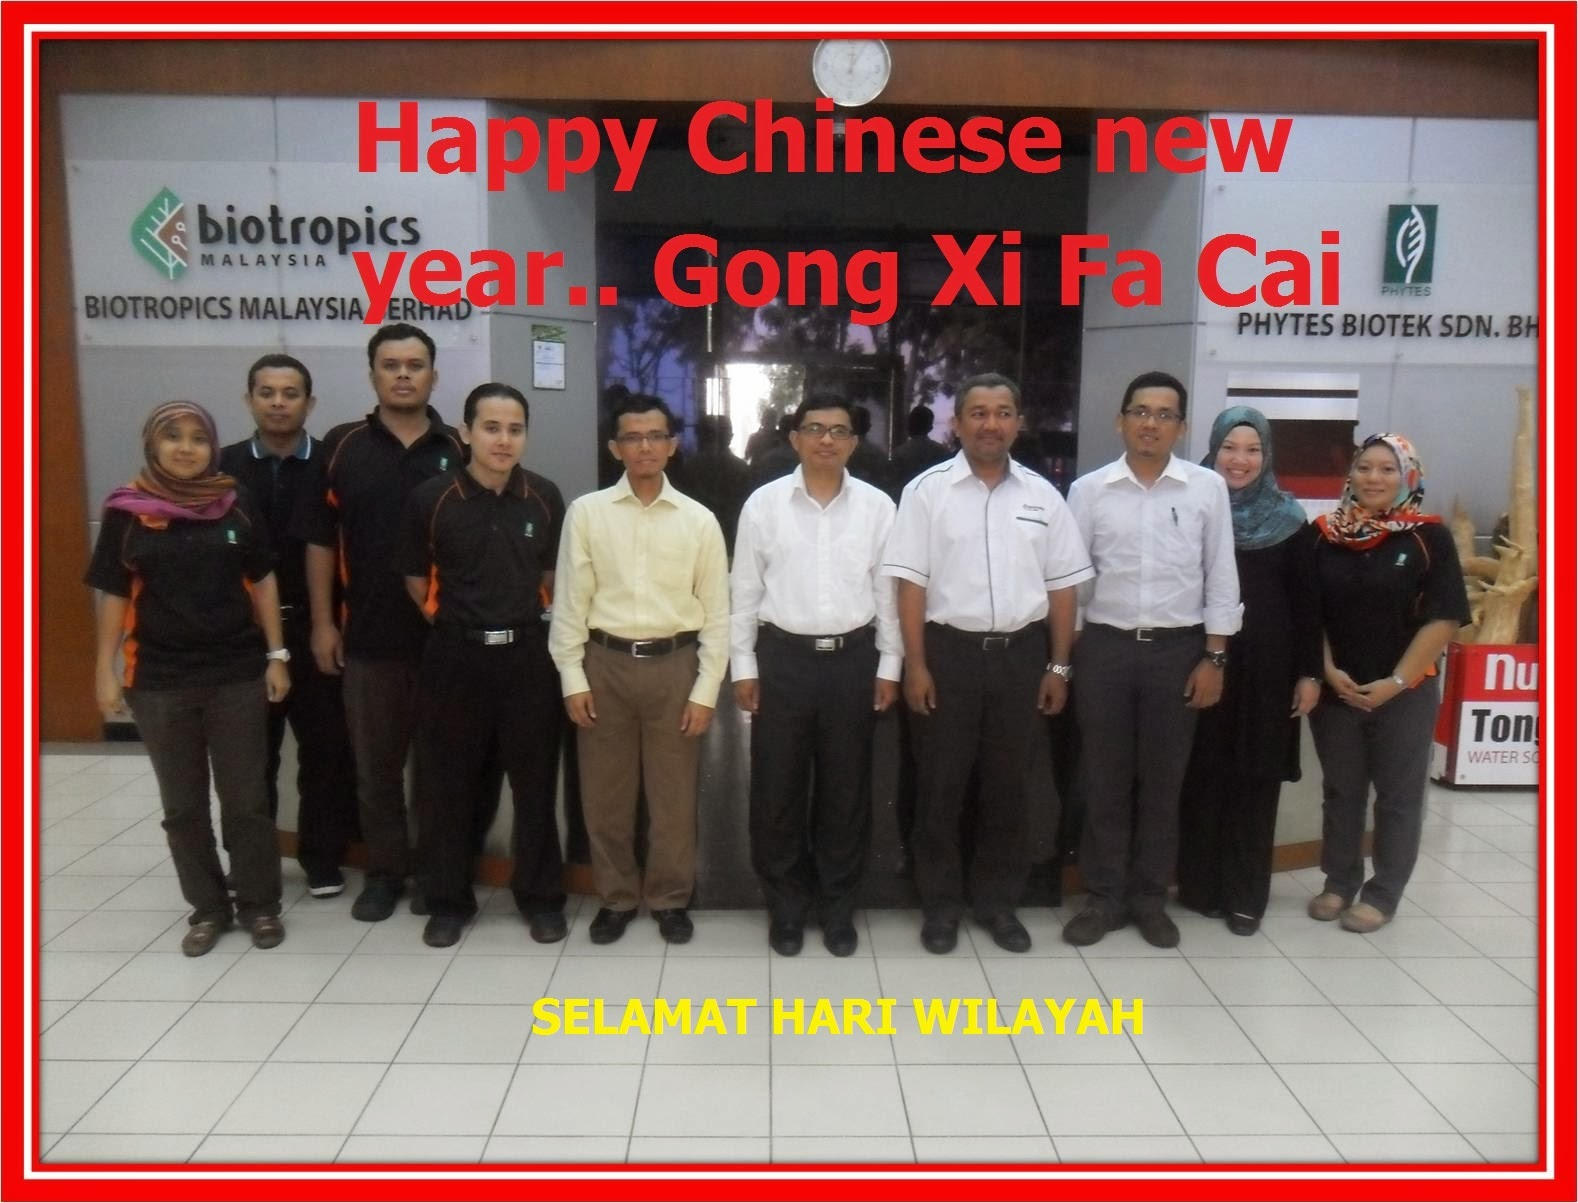 Happy Chinese New Year - Gong Xi Fa Cai